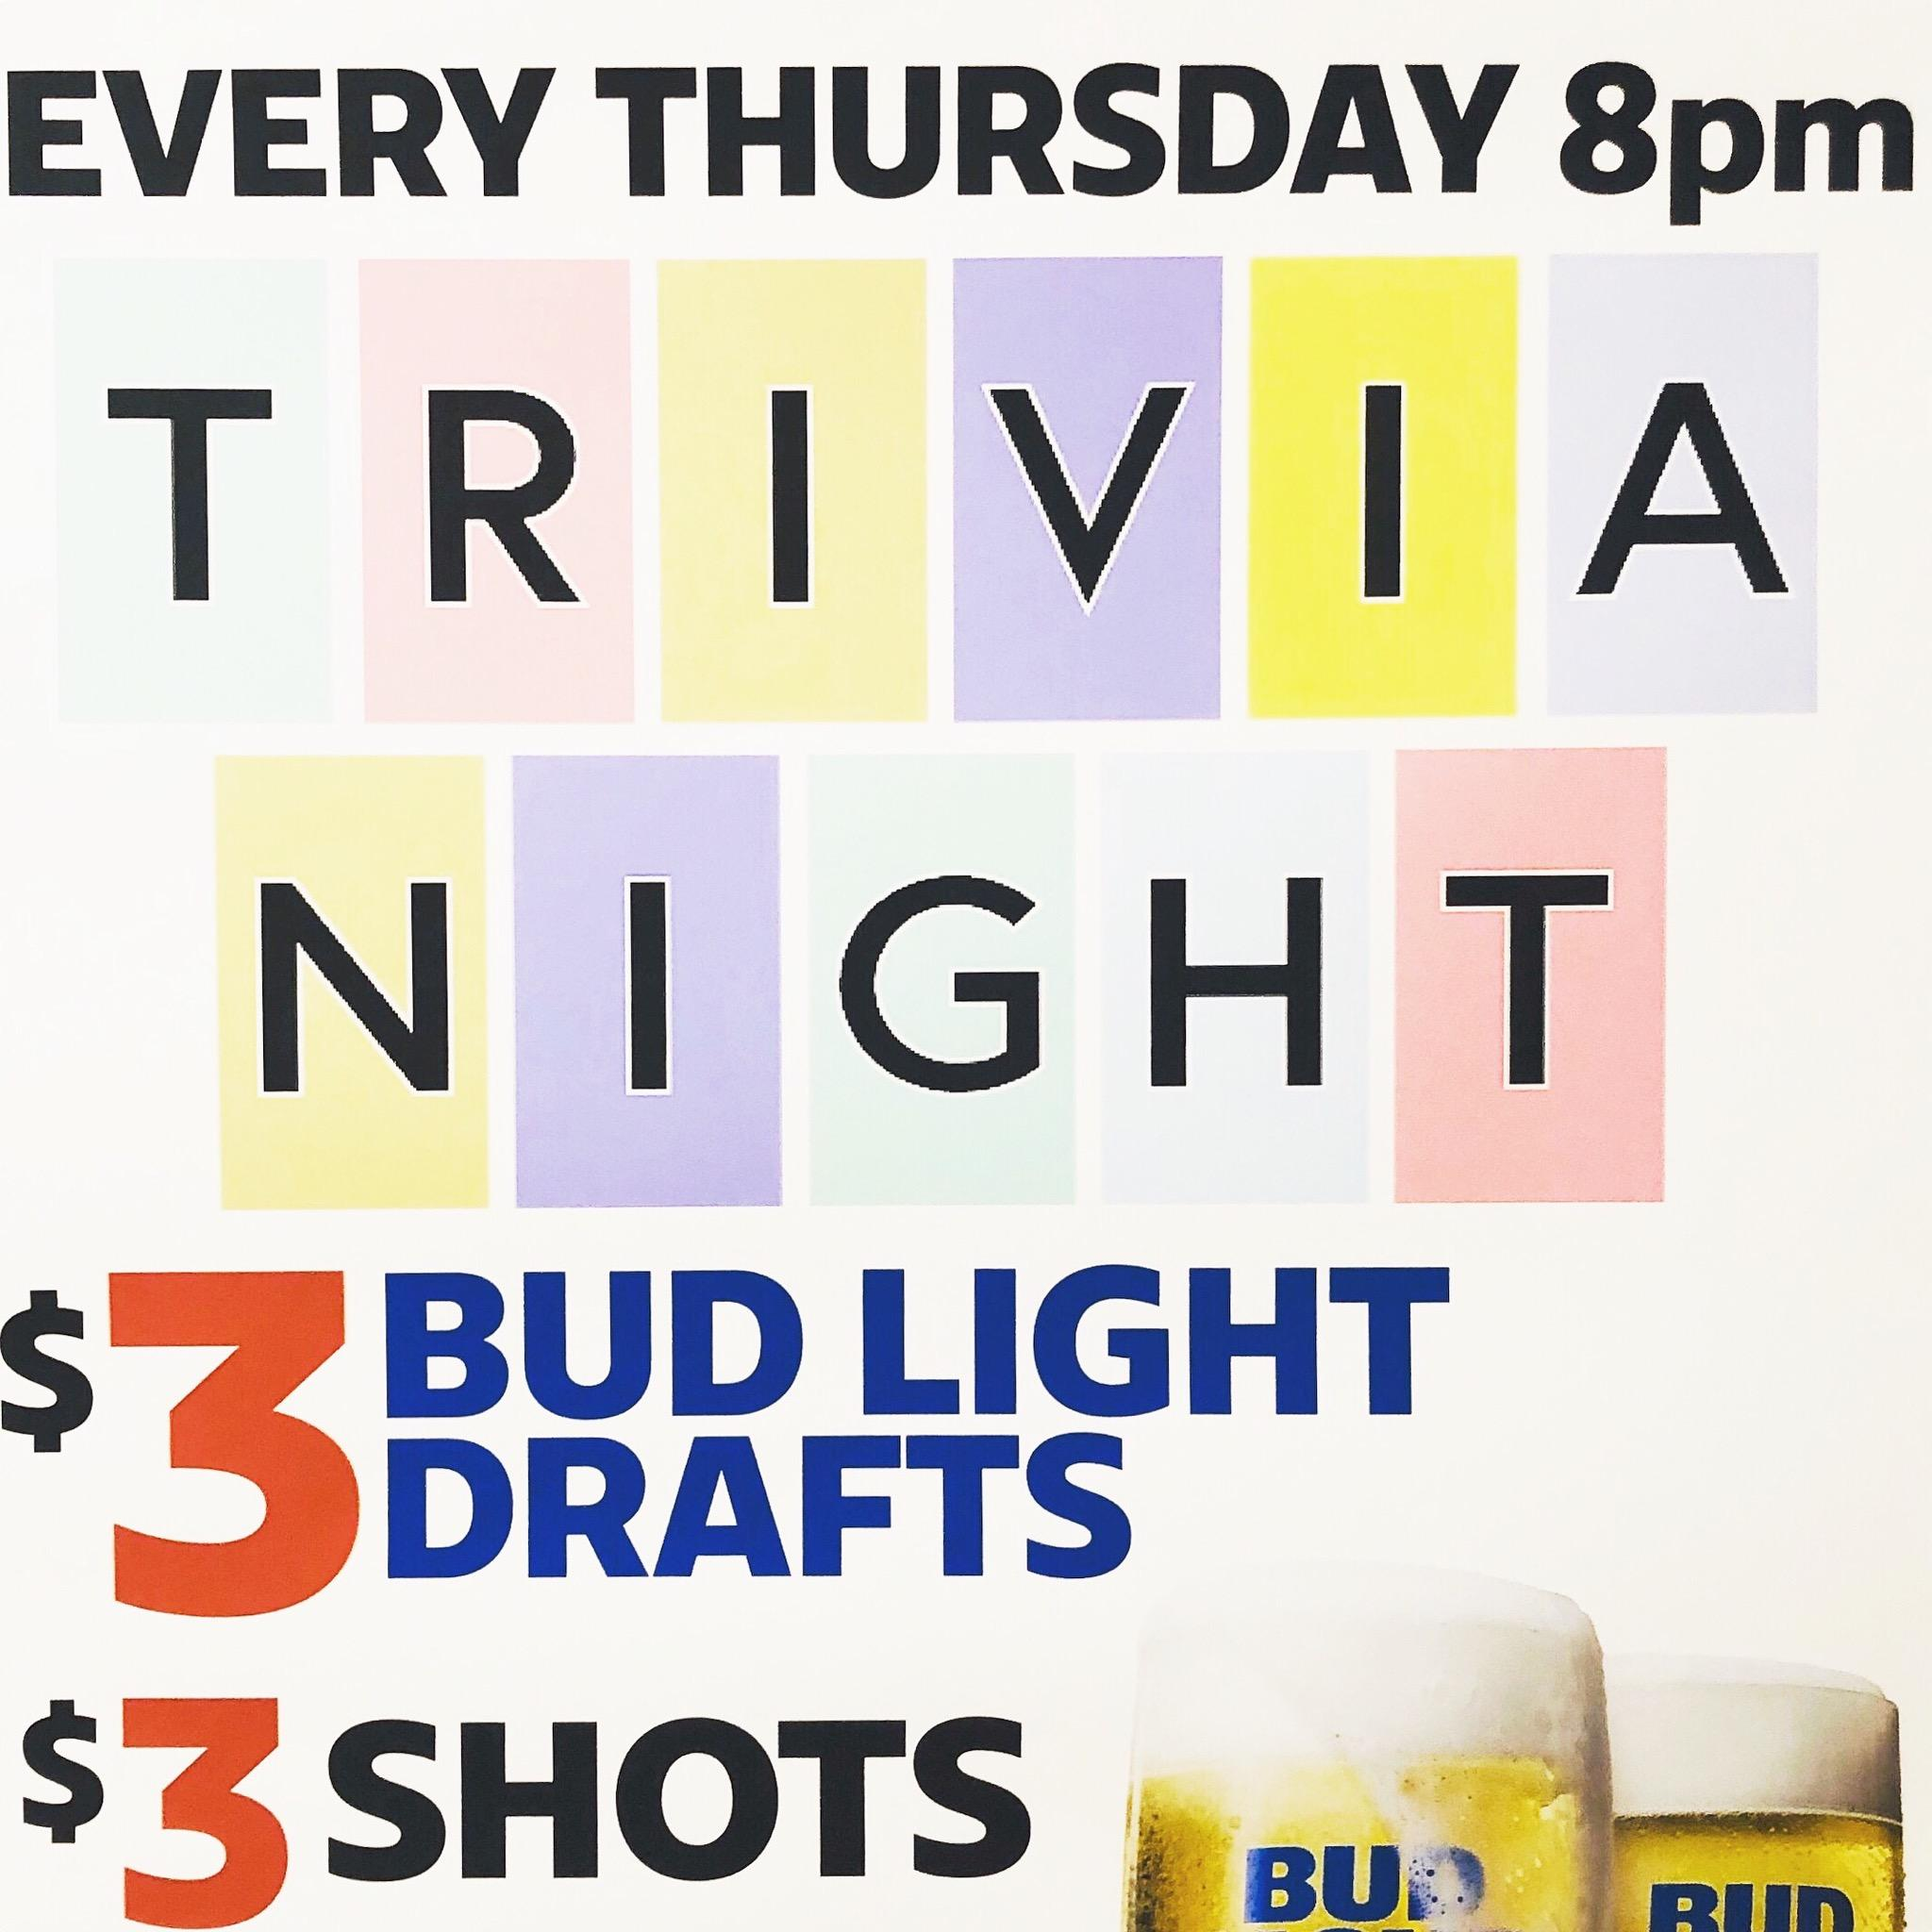 thursdaytrivia